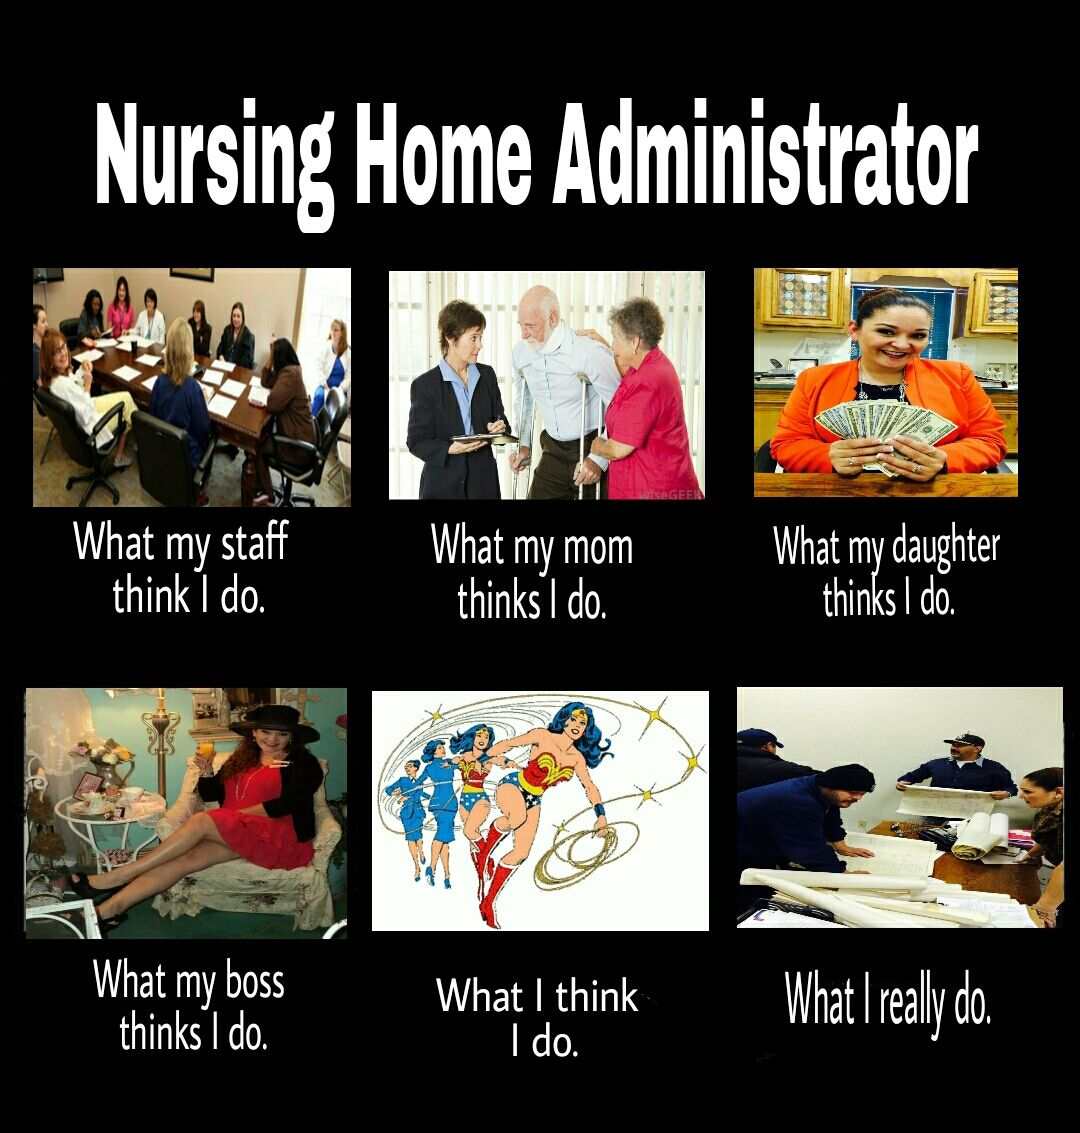 Nursing Home AdministratorDo they know what WE do